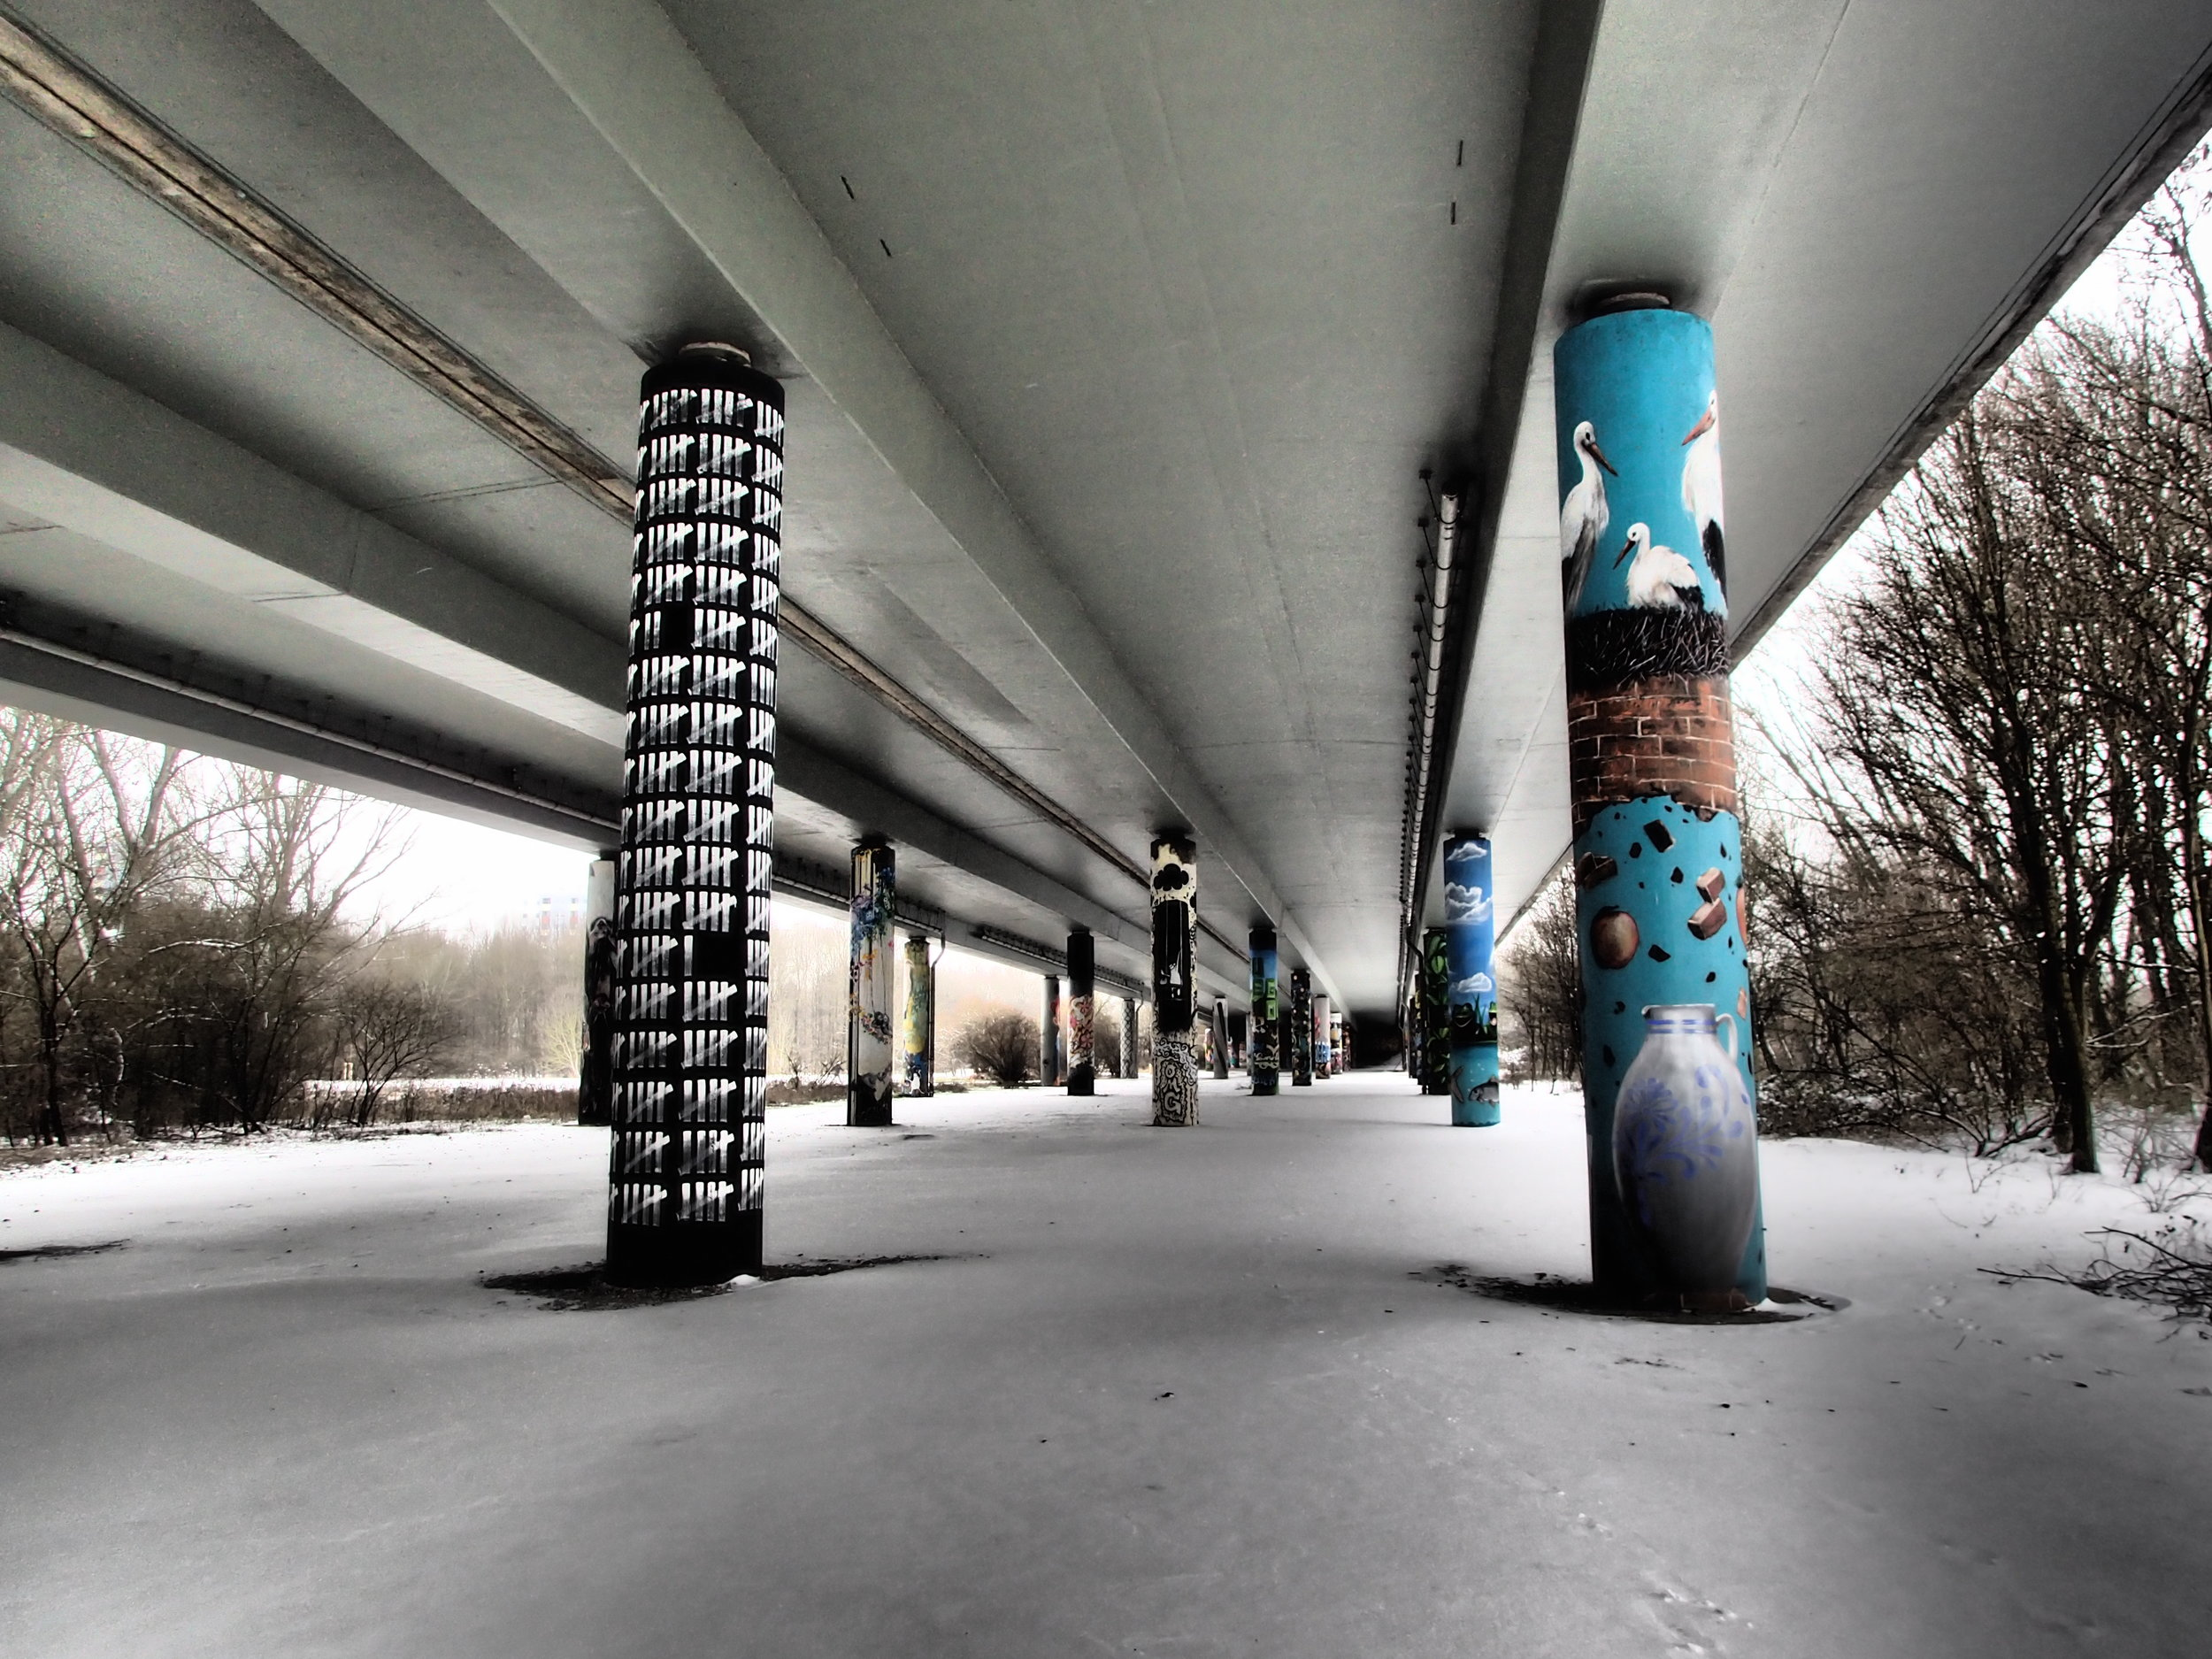 Highway underpass in Niddapark which is also used as a graffity gallery.